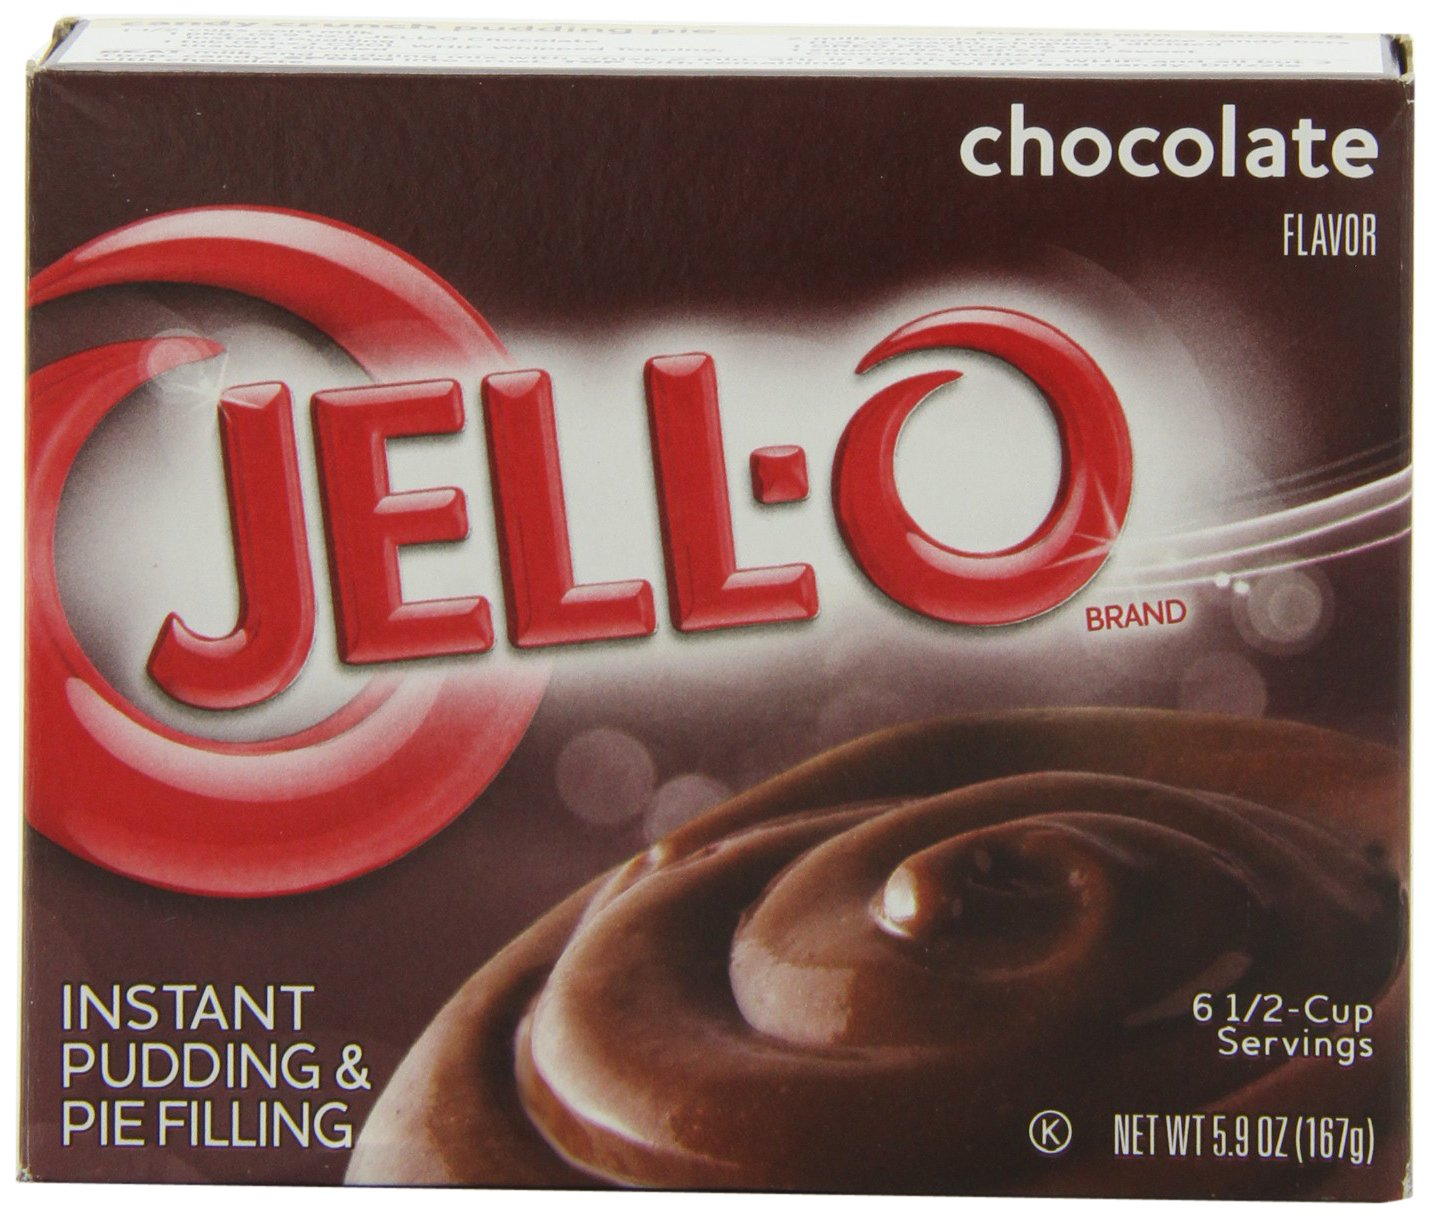 JELL-O Instant Pudding & Pie Filling, Chocolate, 5.9 Ounce Boxes